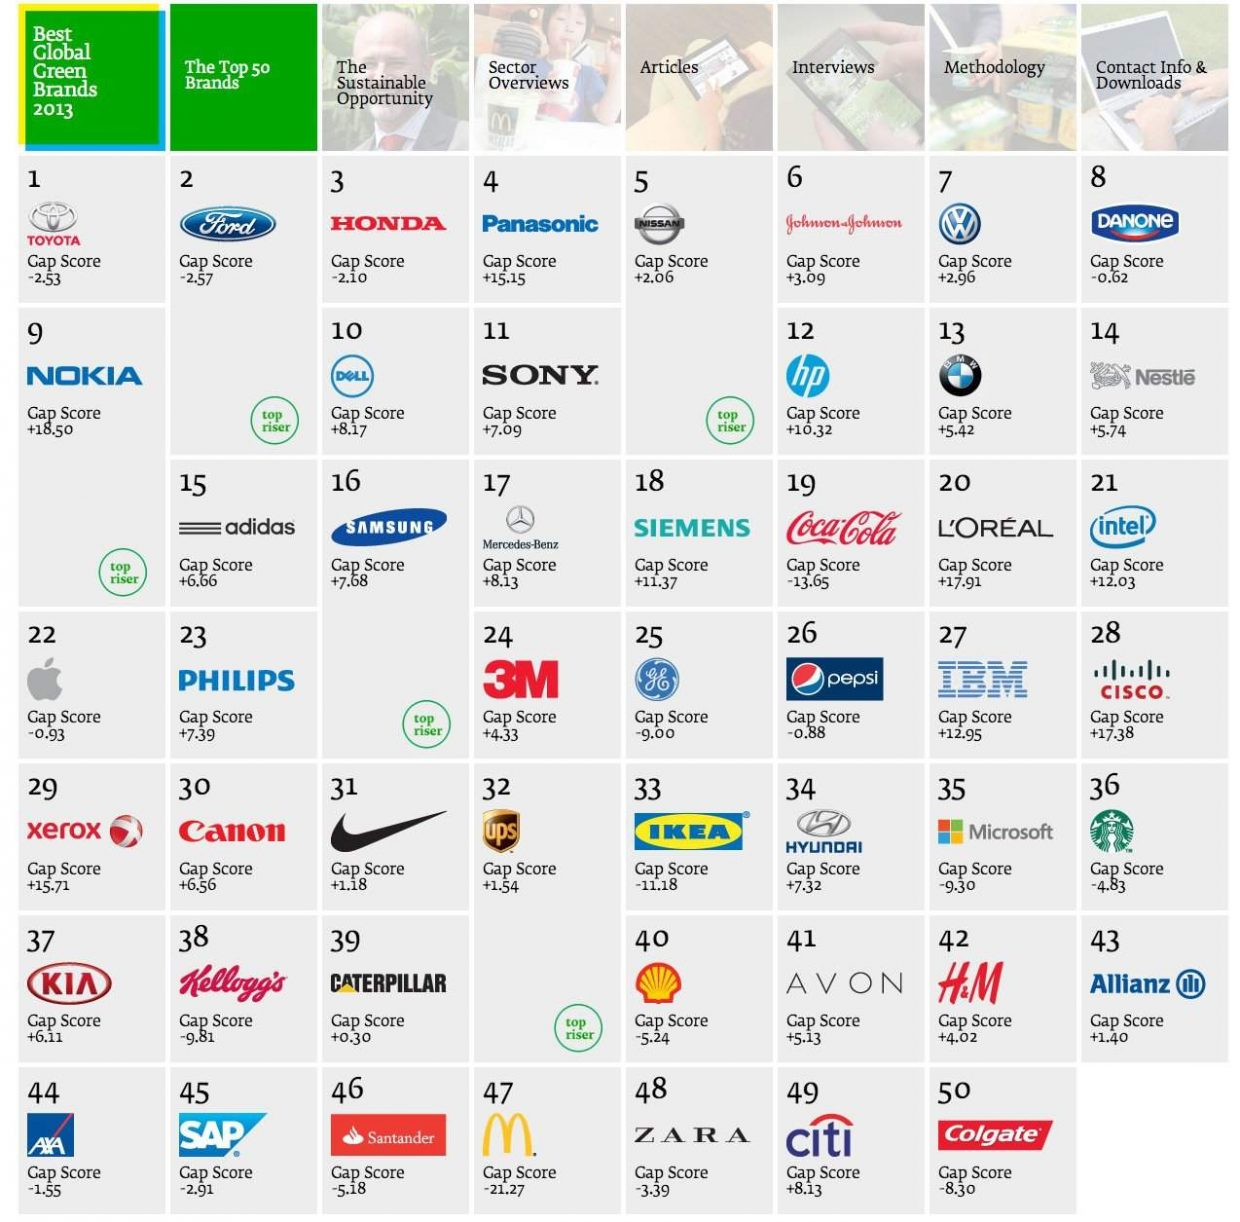 Interbrands Top 50 Global Green Brands of 2013